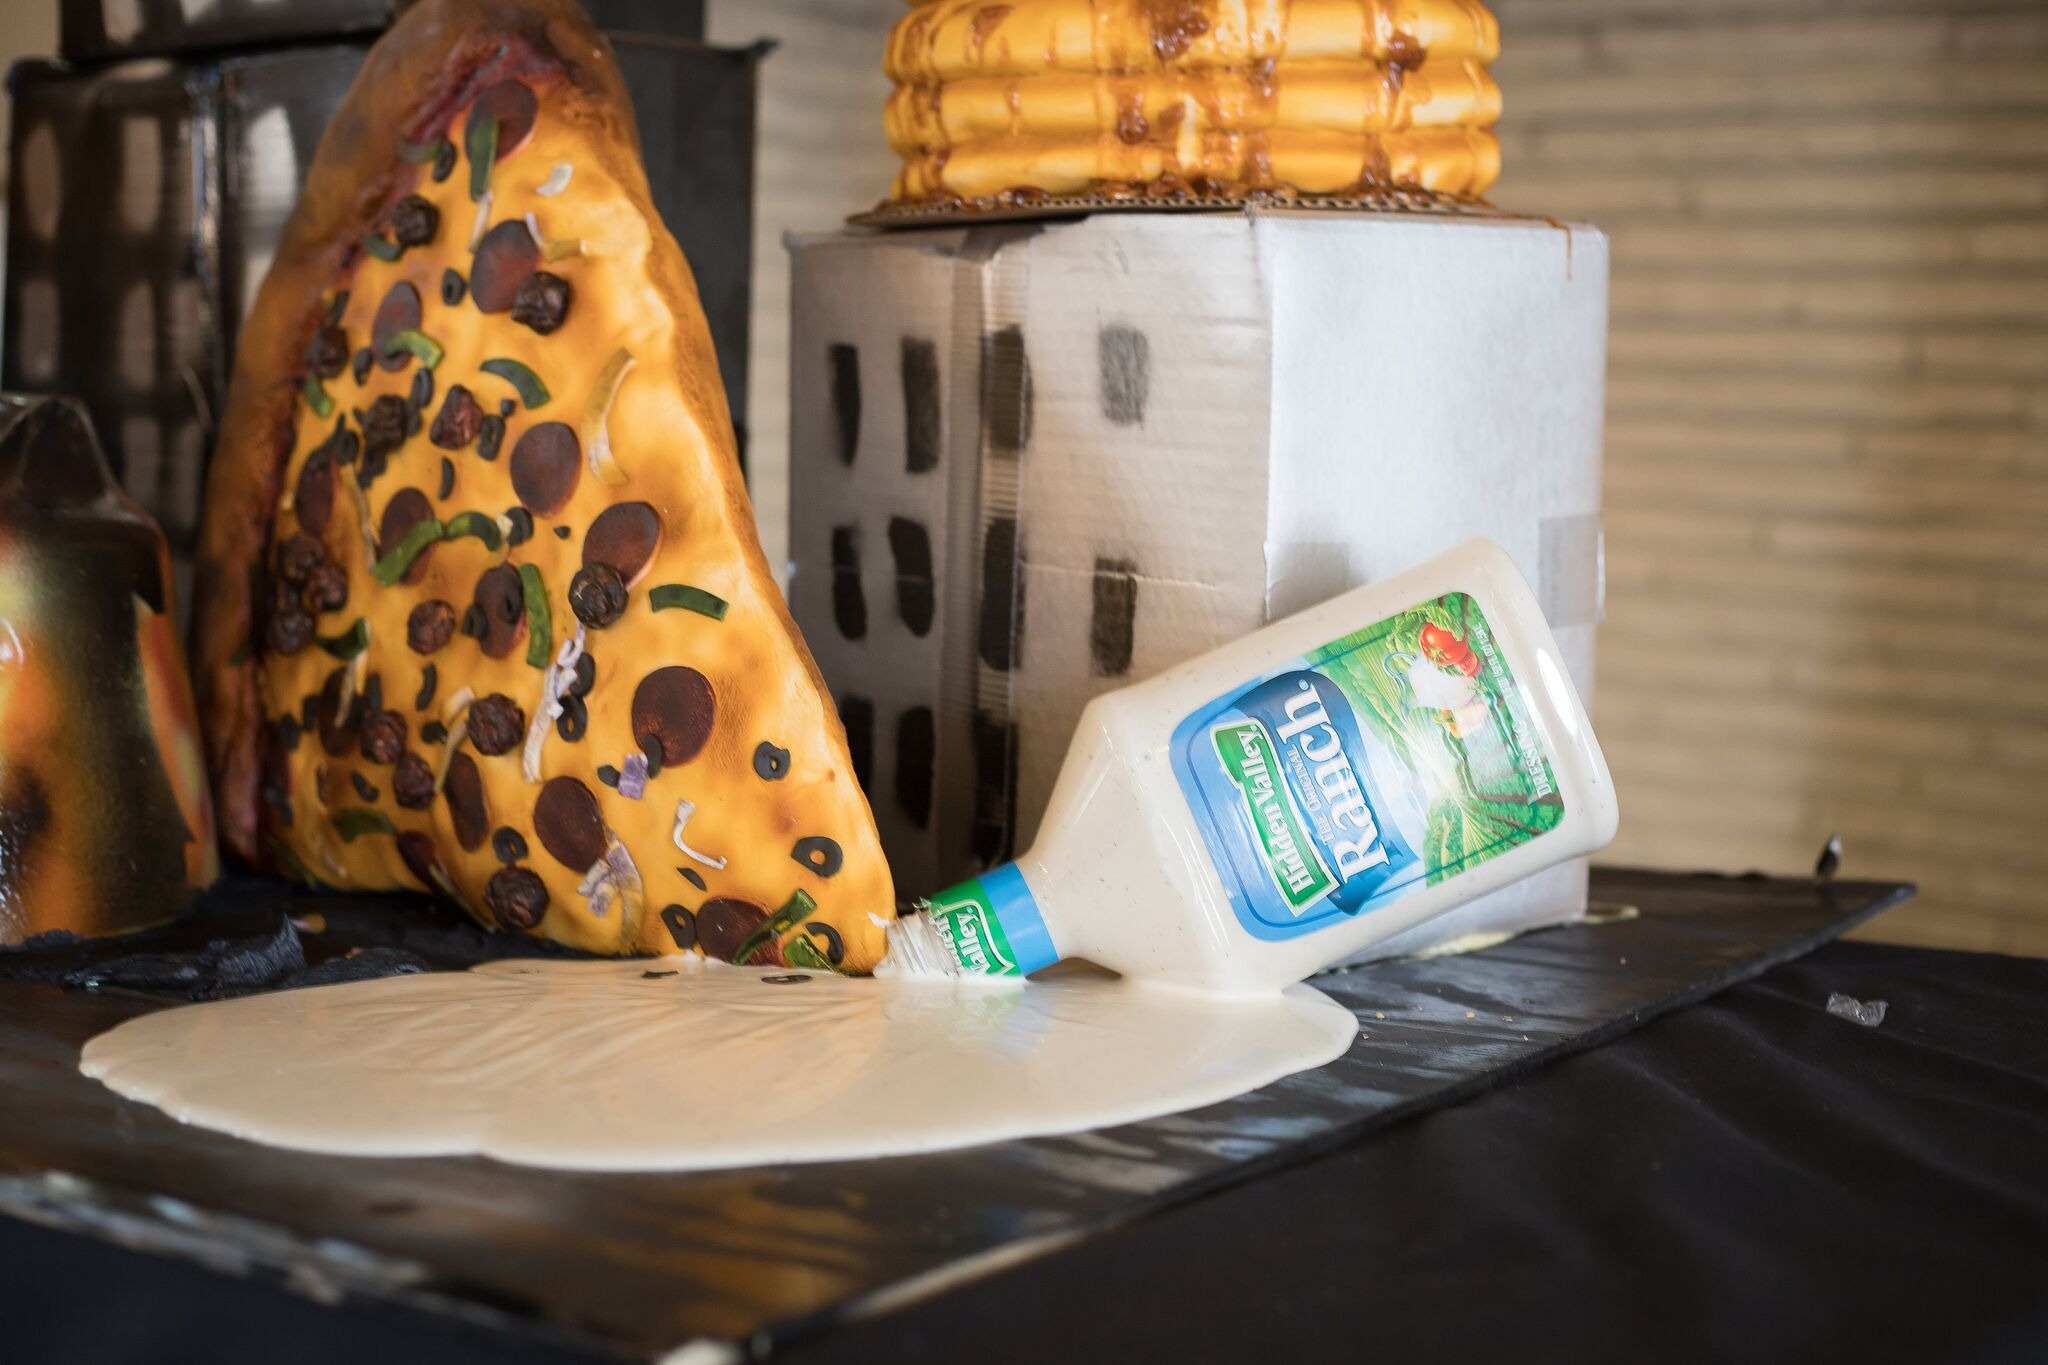 Guy Fieri style ranch fountain and pizza cake for dipping.